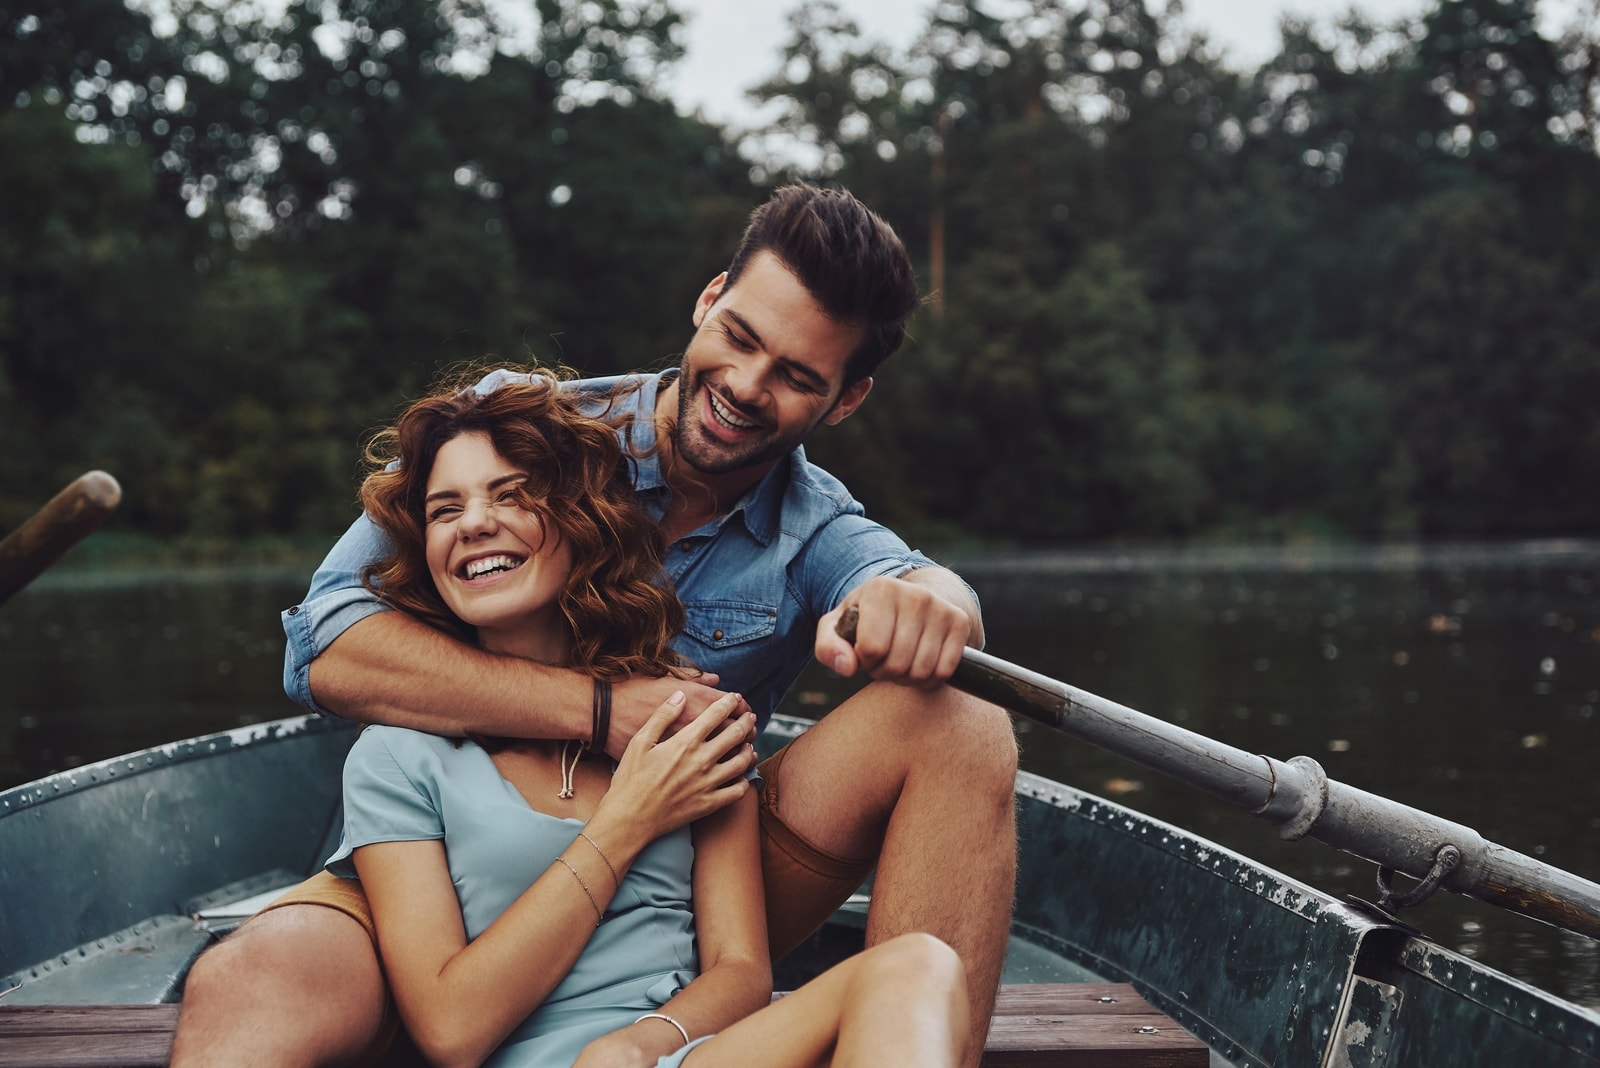 man and woman smiling while sitting on boat